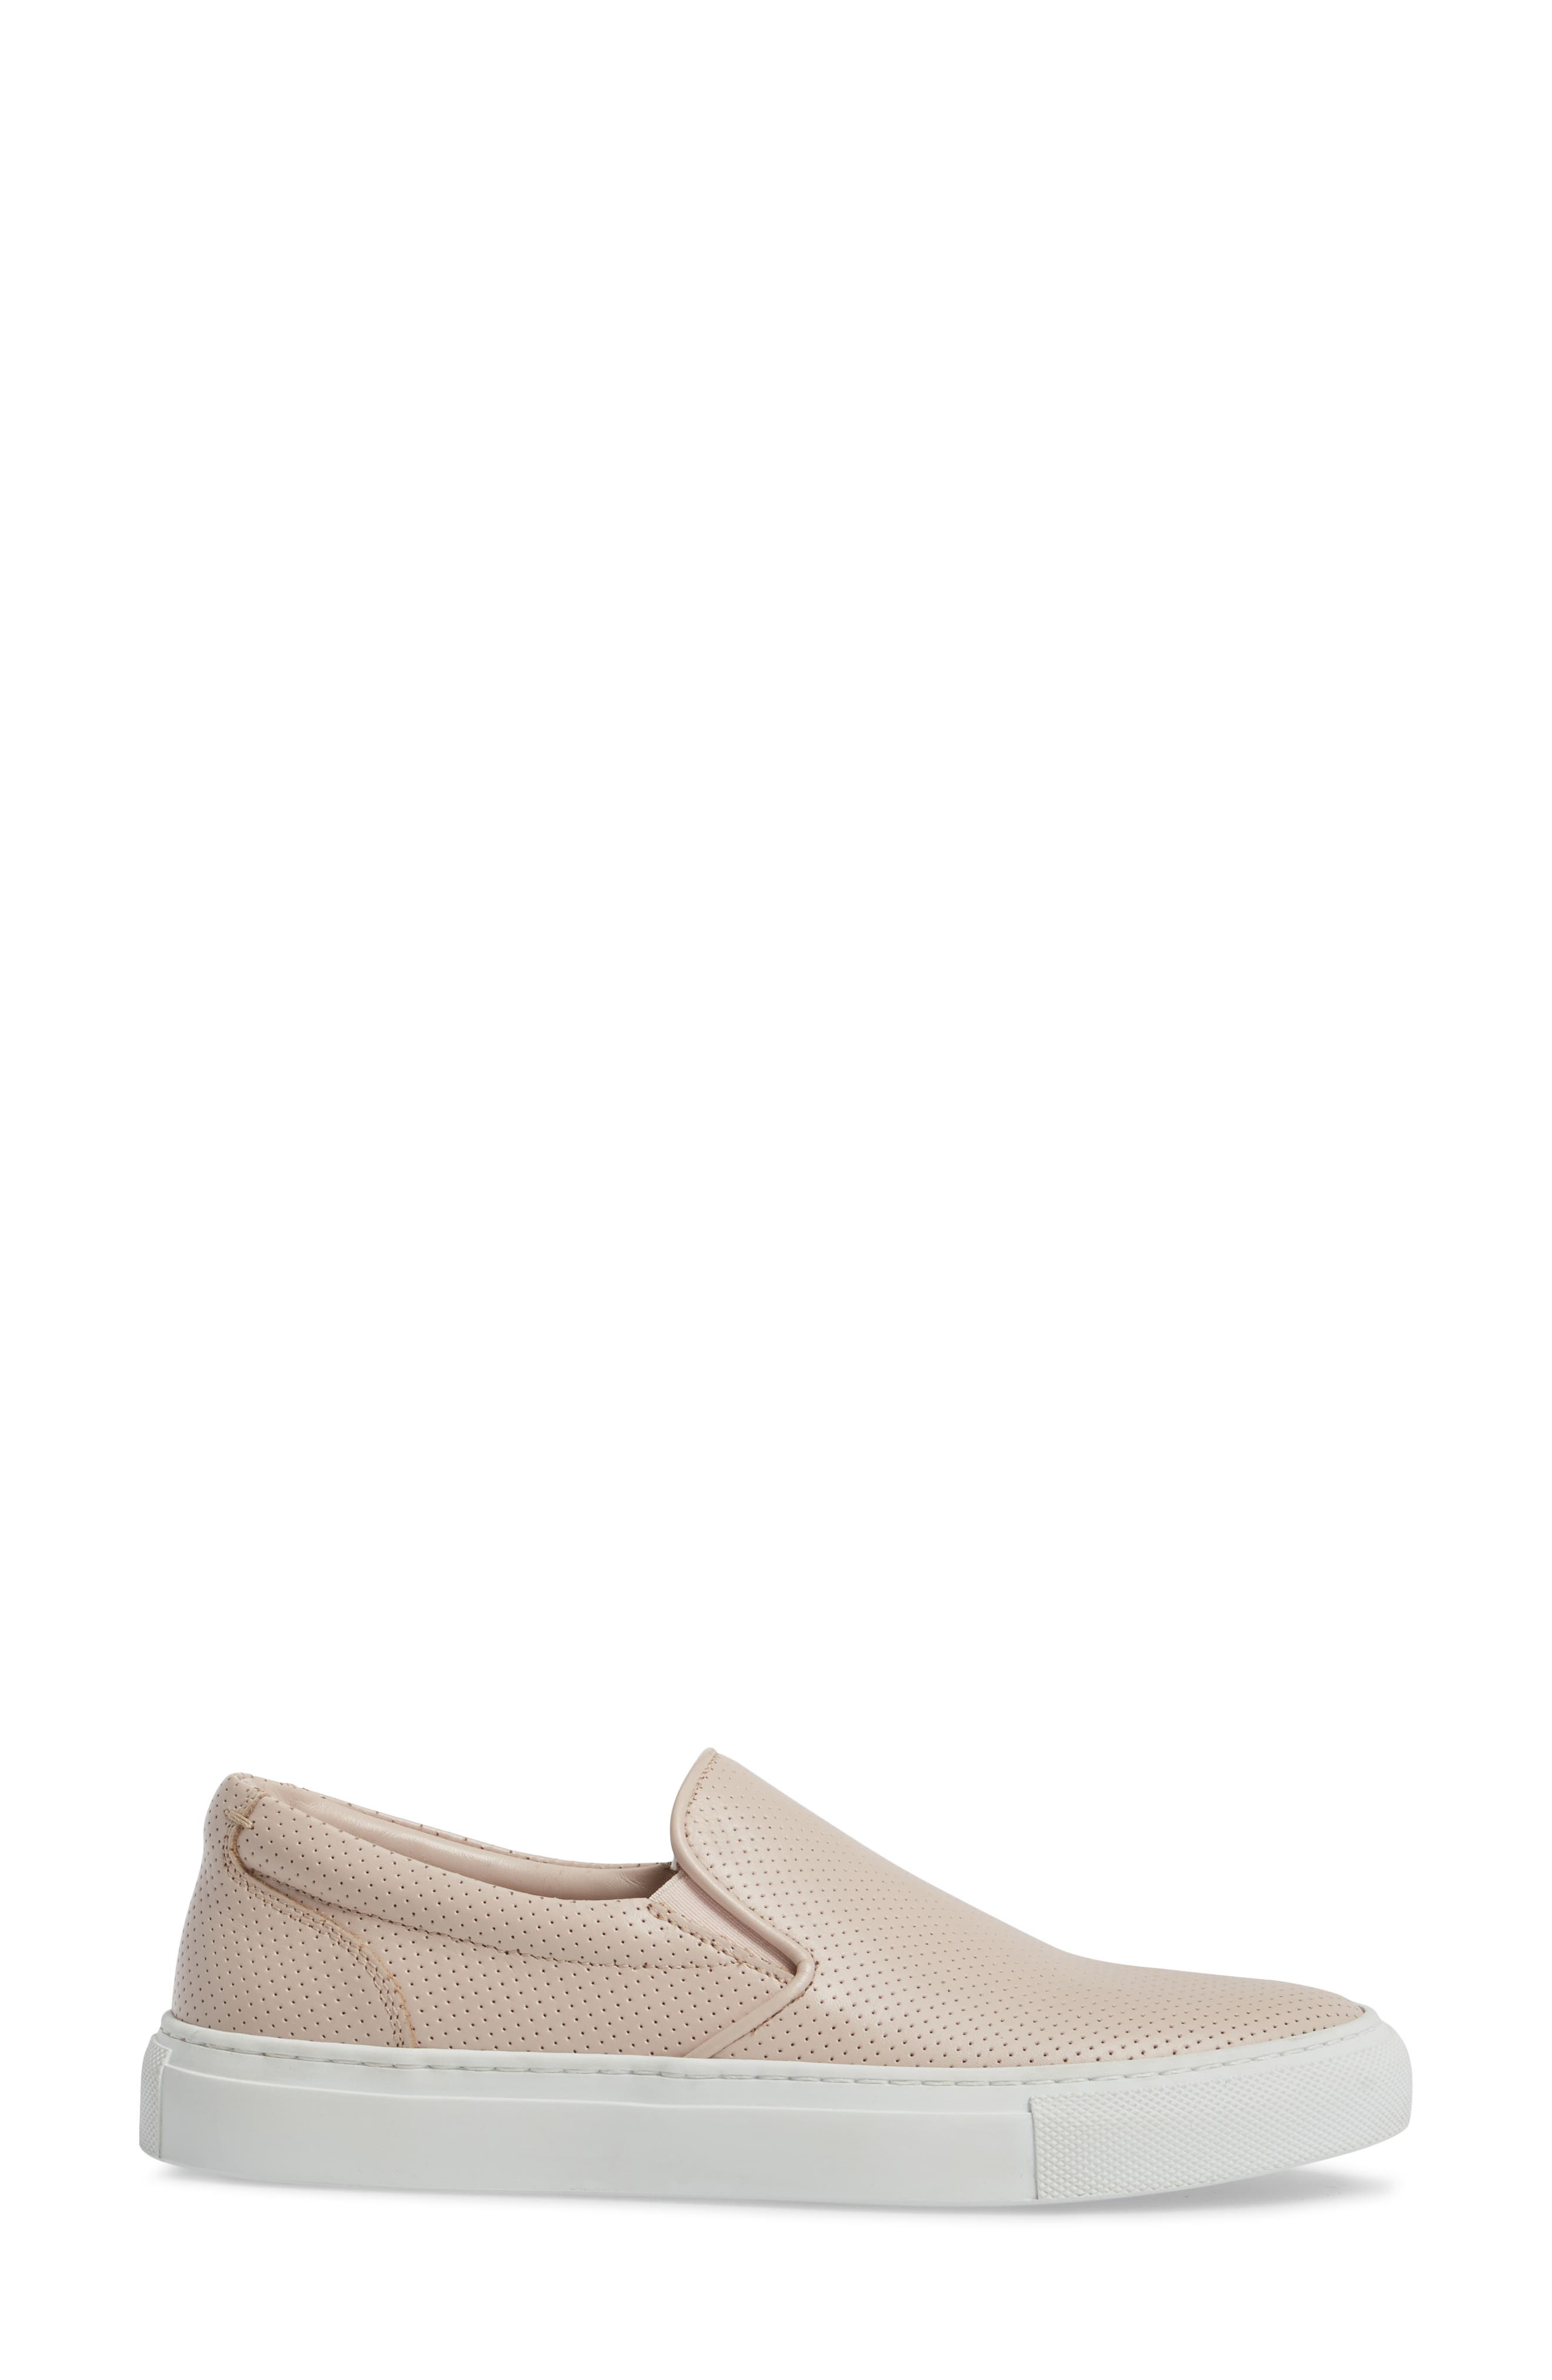 Wooster Slip-On Sneaker,                             Alternate thumbnail 3, color,                             Blush Perforated